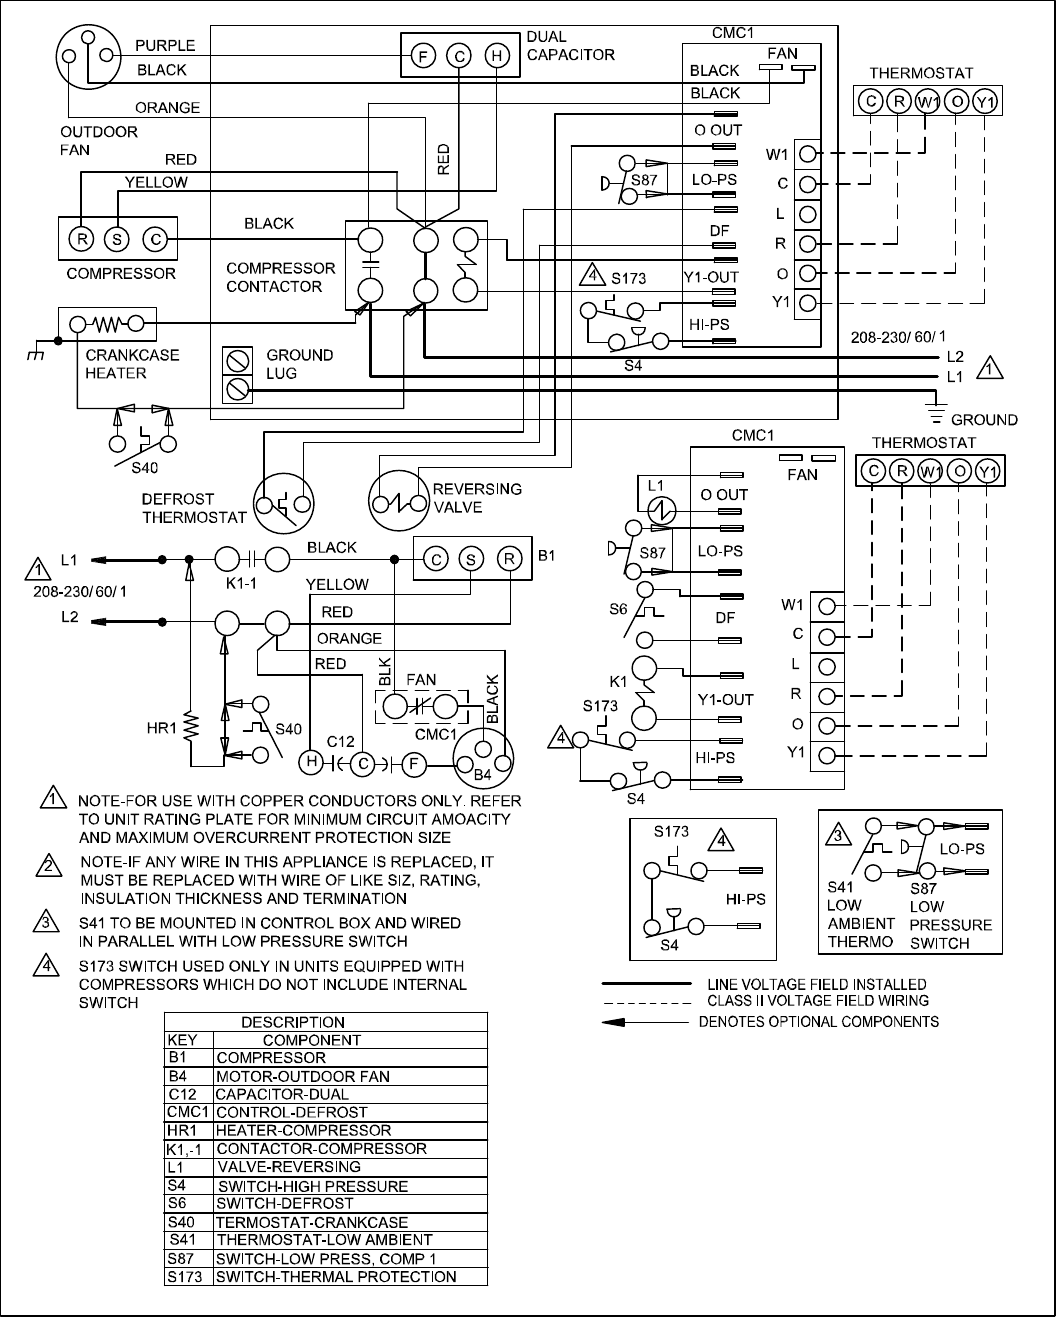 #3C3C3C Page 20 Of Lennox International Inc. Air Conditioner 06/11  Recommended 8297 Air Conditioner Wiring Diagram Troubleshooting pics with 1056x1317 px on helpvideos.info - Air Conditioners, Air Coolers and more